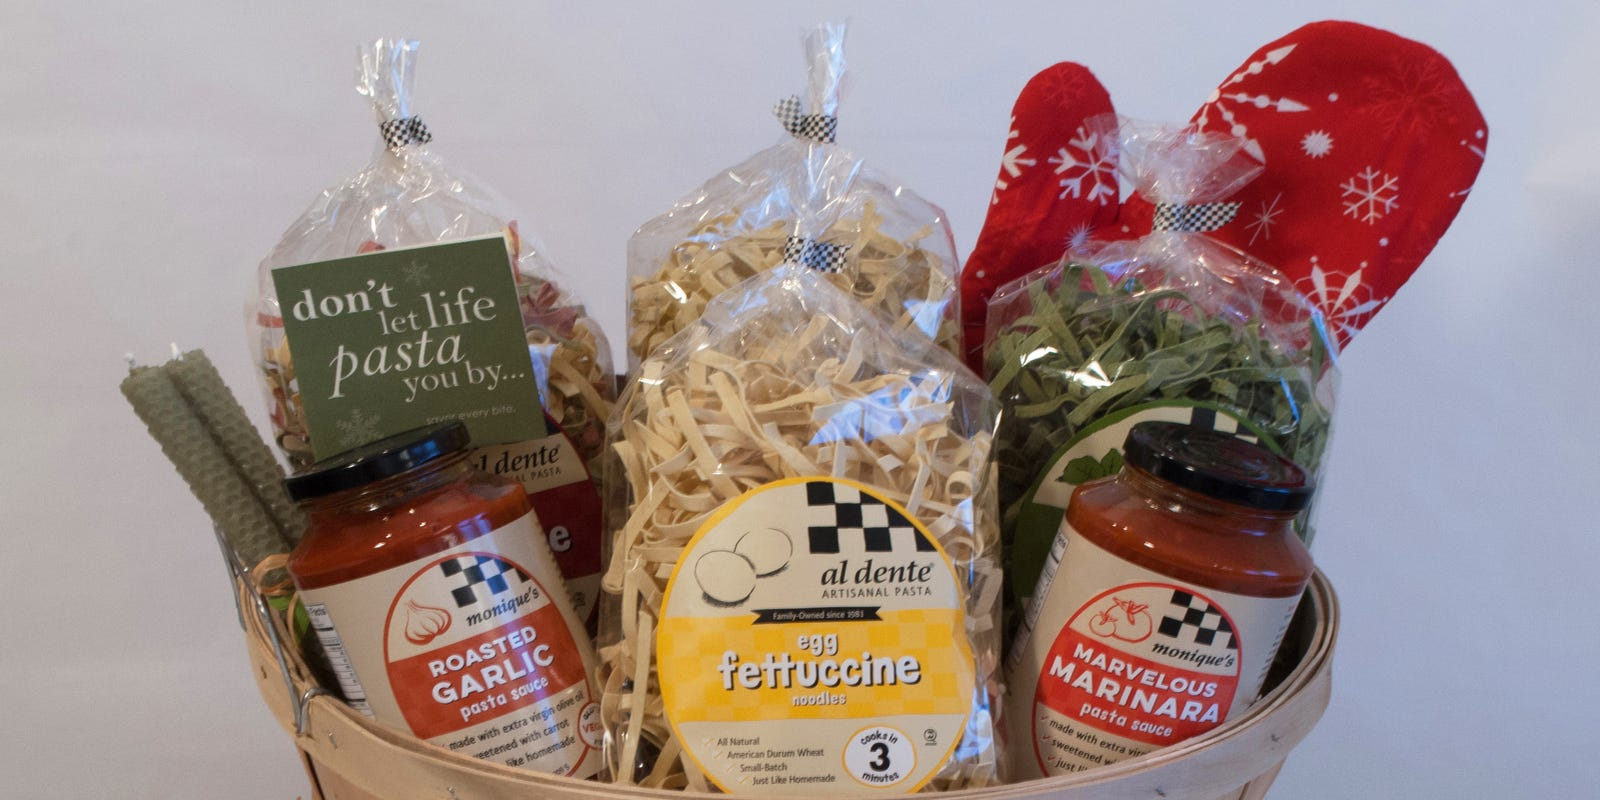 Mail order gift guide: Michigan specialty foods